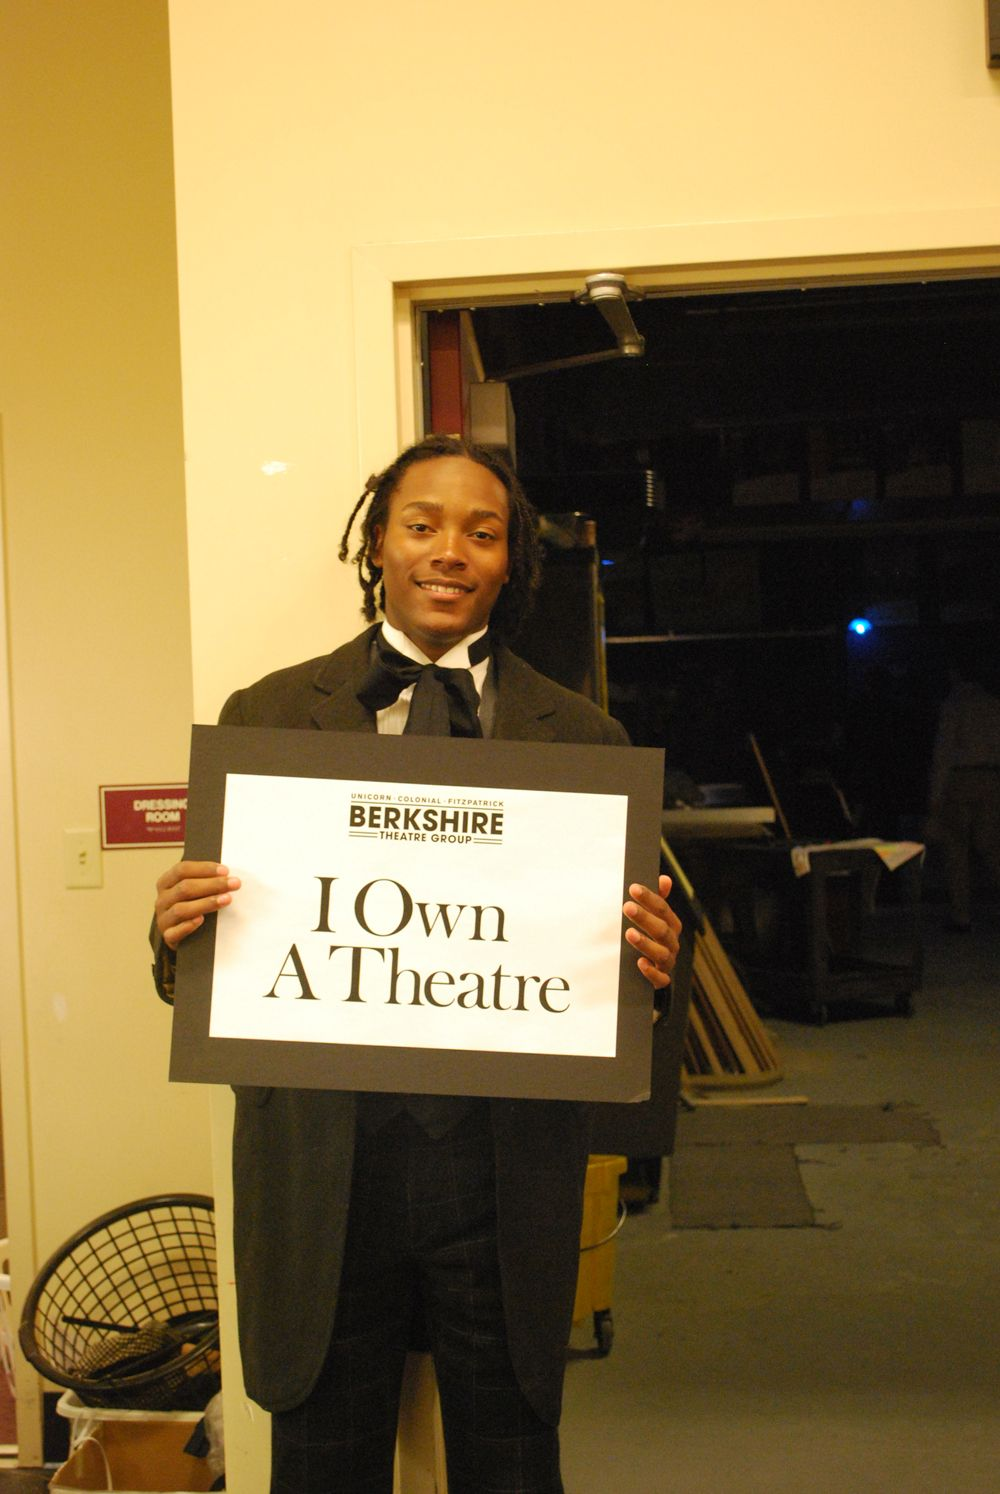 Meet derrick carter who played noah in our production of